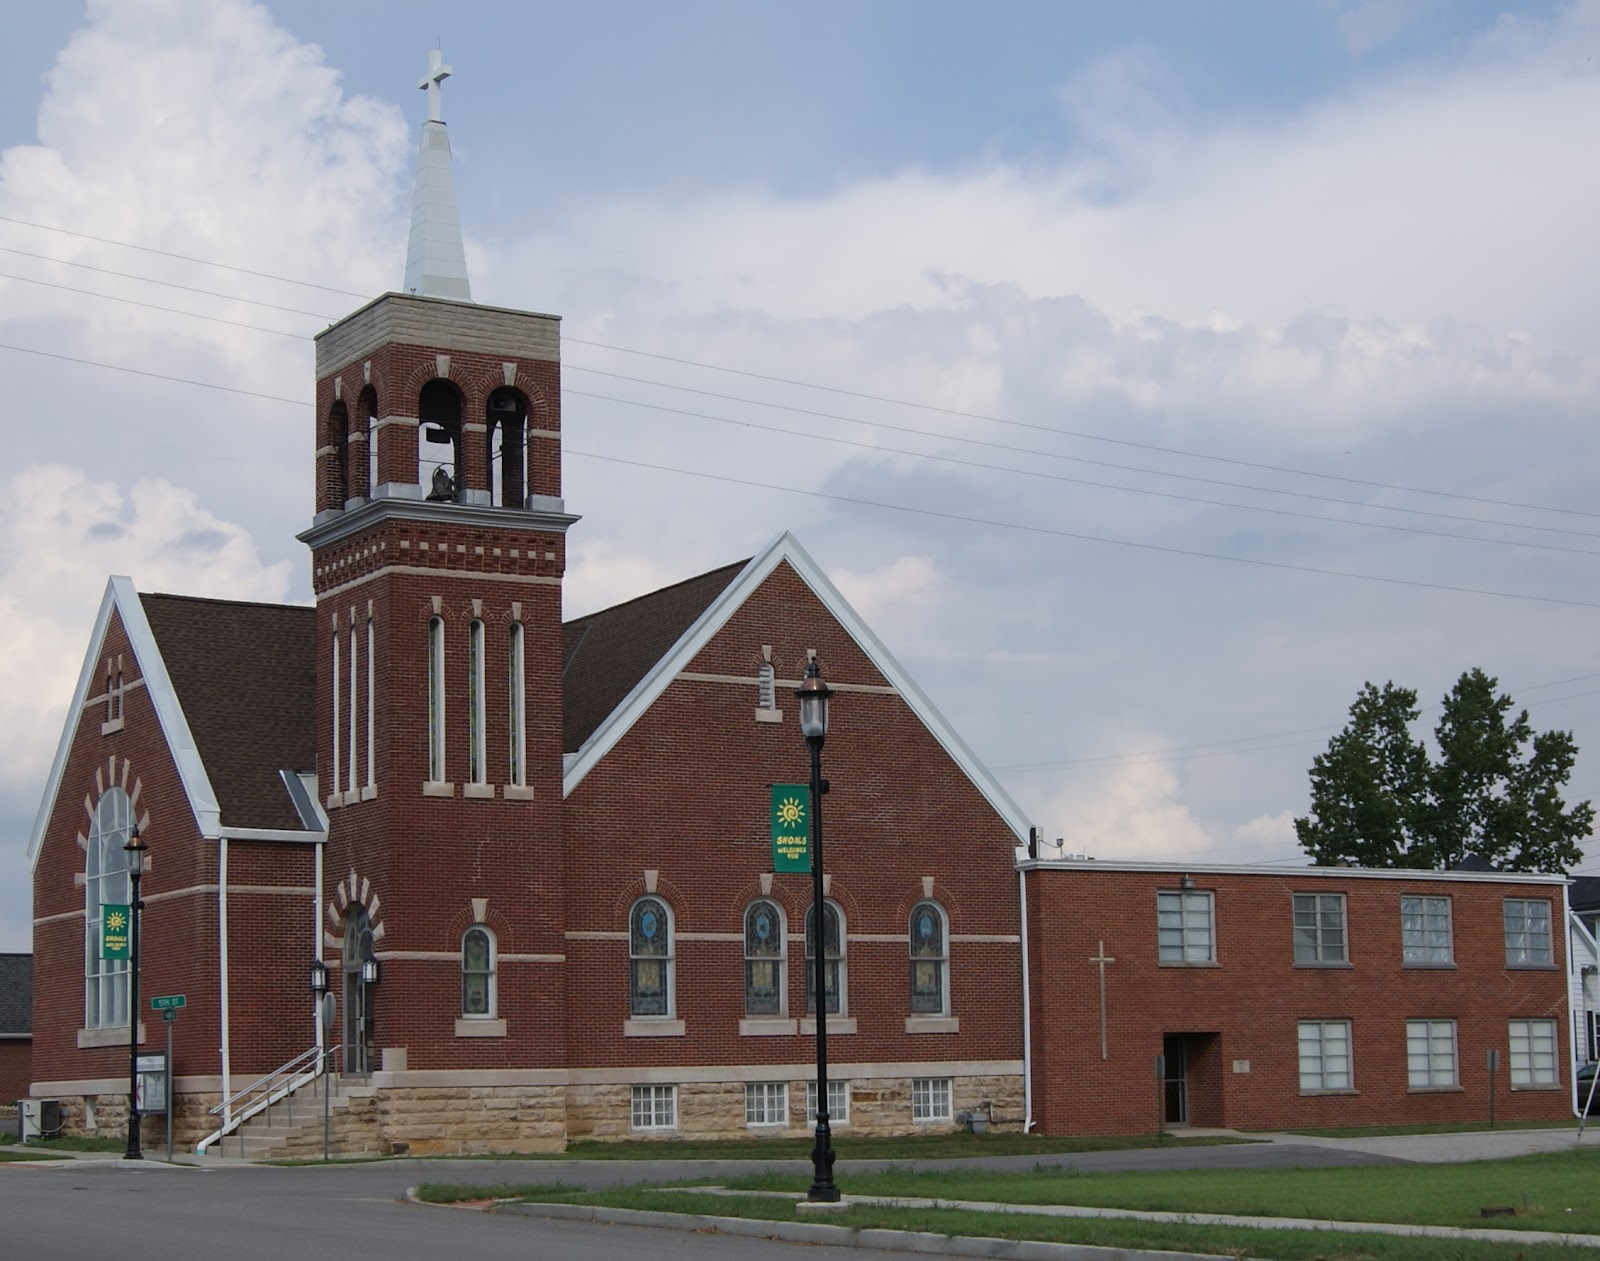 Indiana martin county shoals - Southern Indiana Martin County Churches